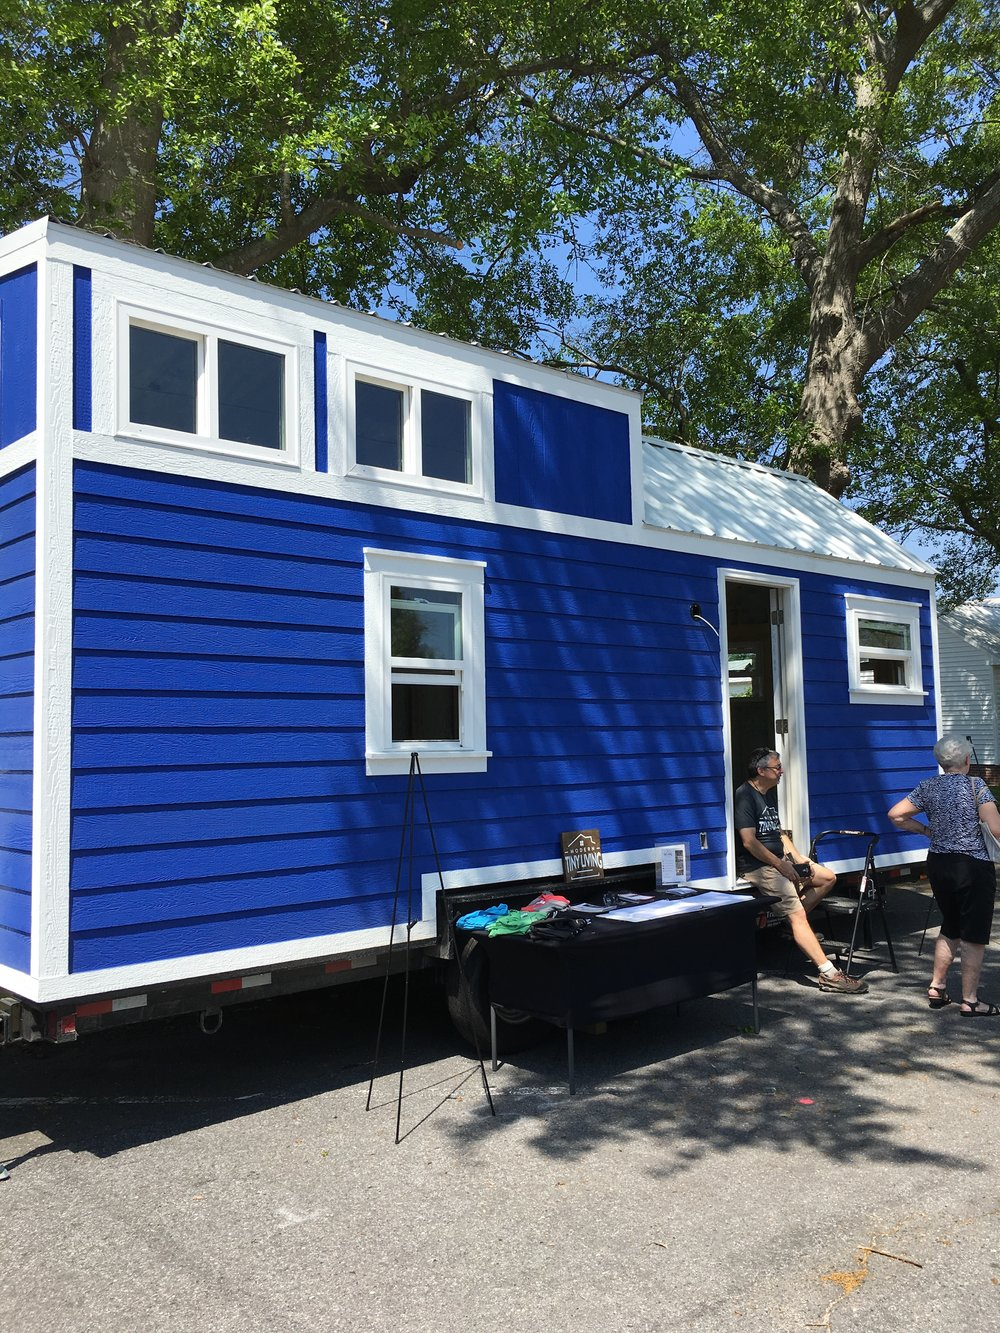 This blue beauty was unfinished on the inside - awaiting someone's tiny house dreams!